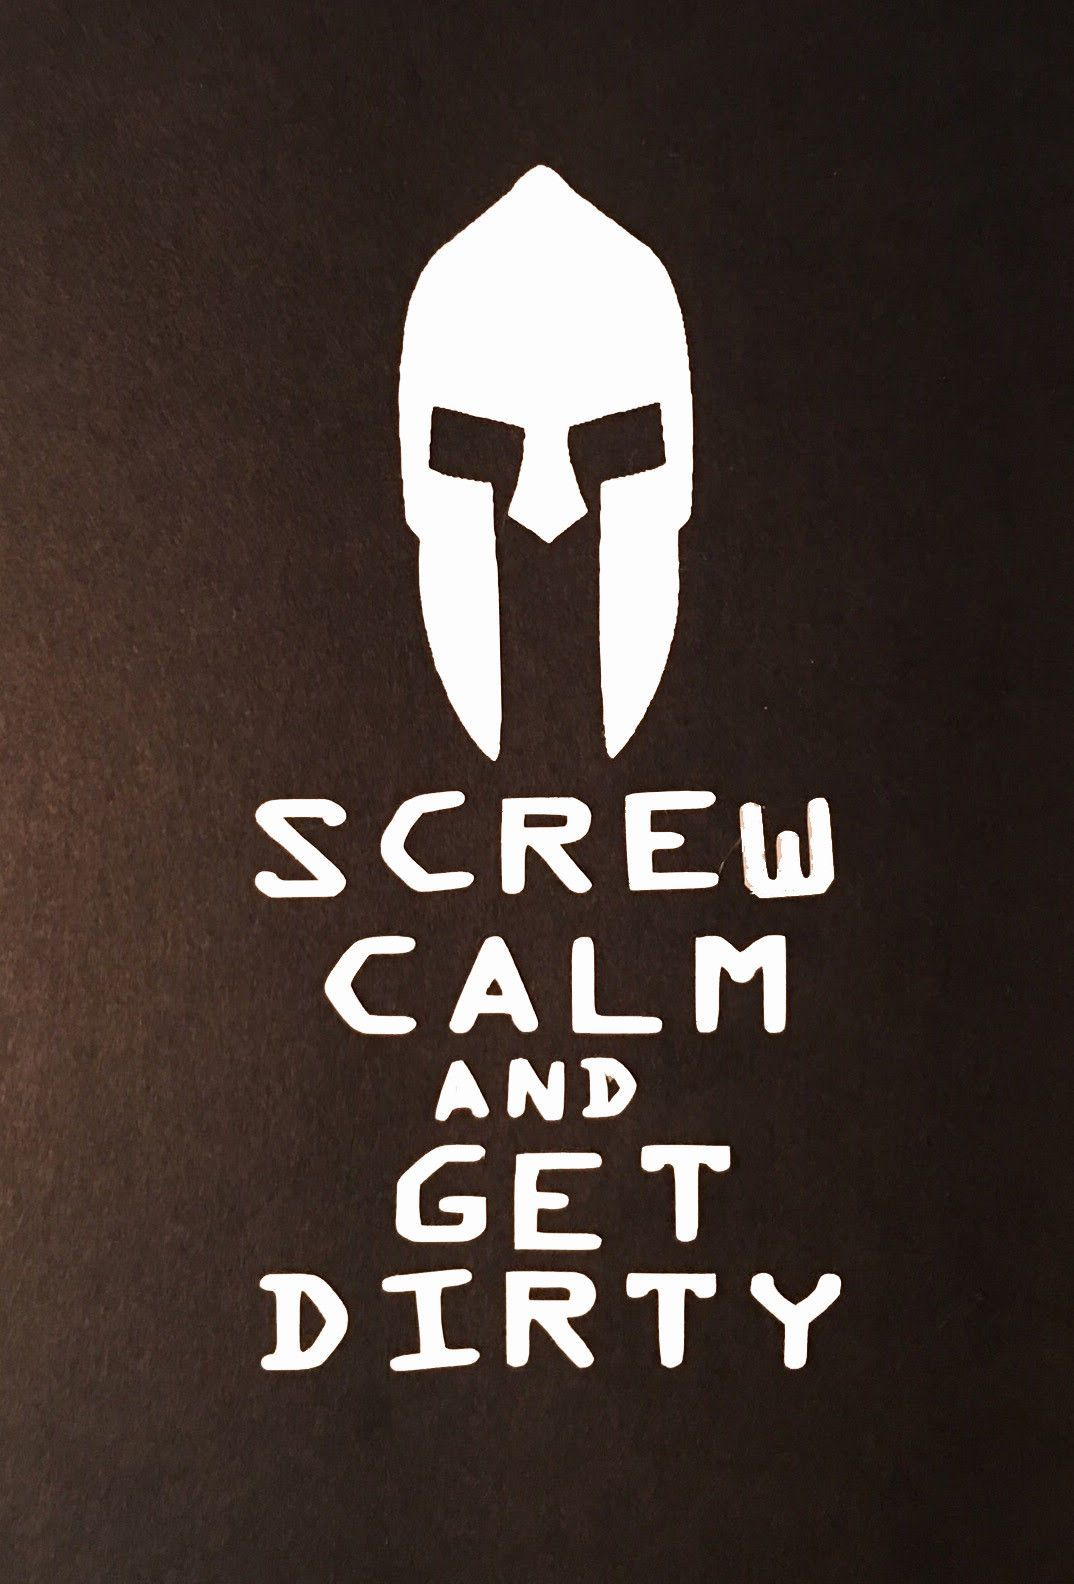 "Screw Calm and Get Dirty Vinyl Decal Sticker 5"" x 3"""